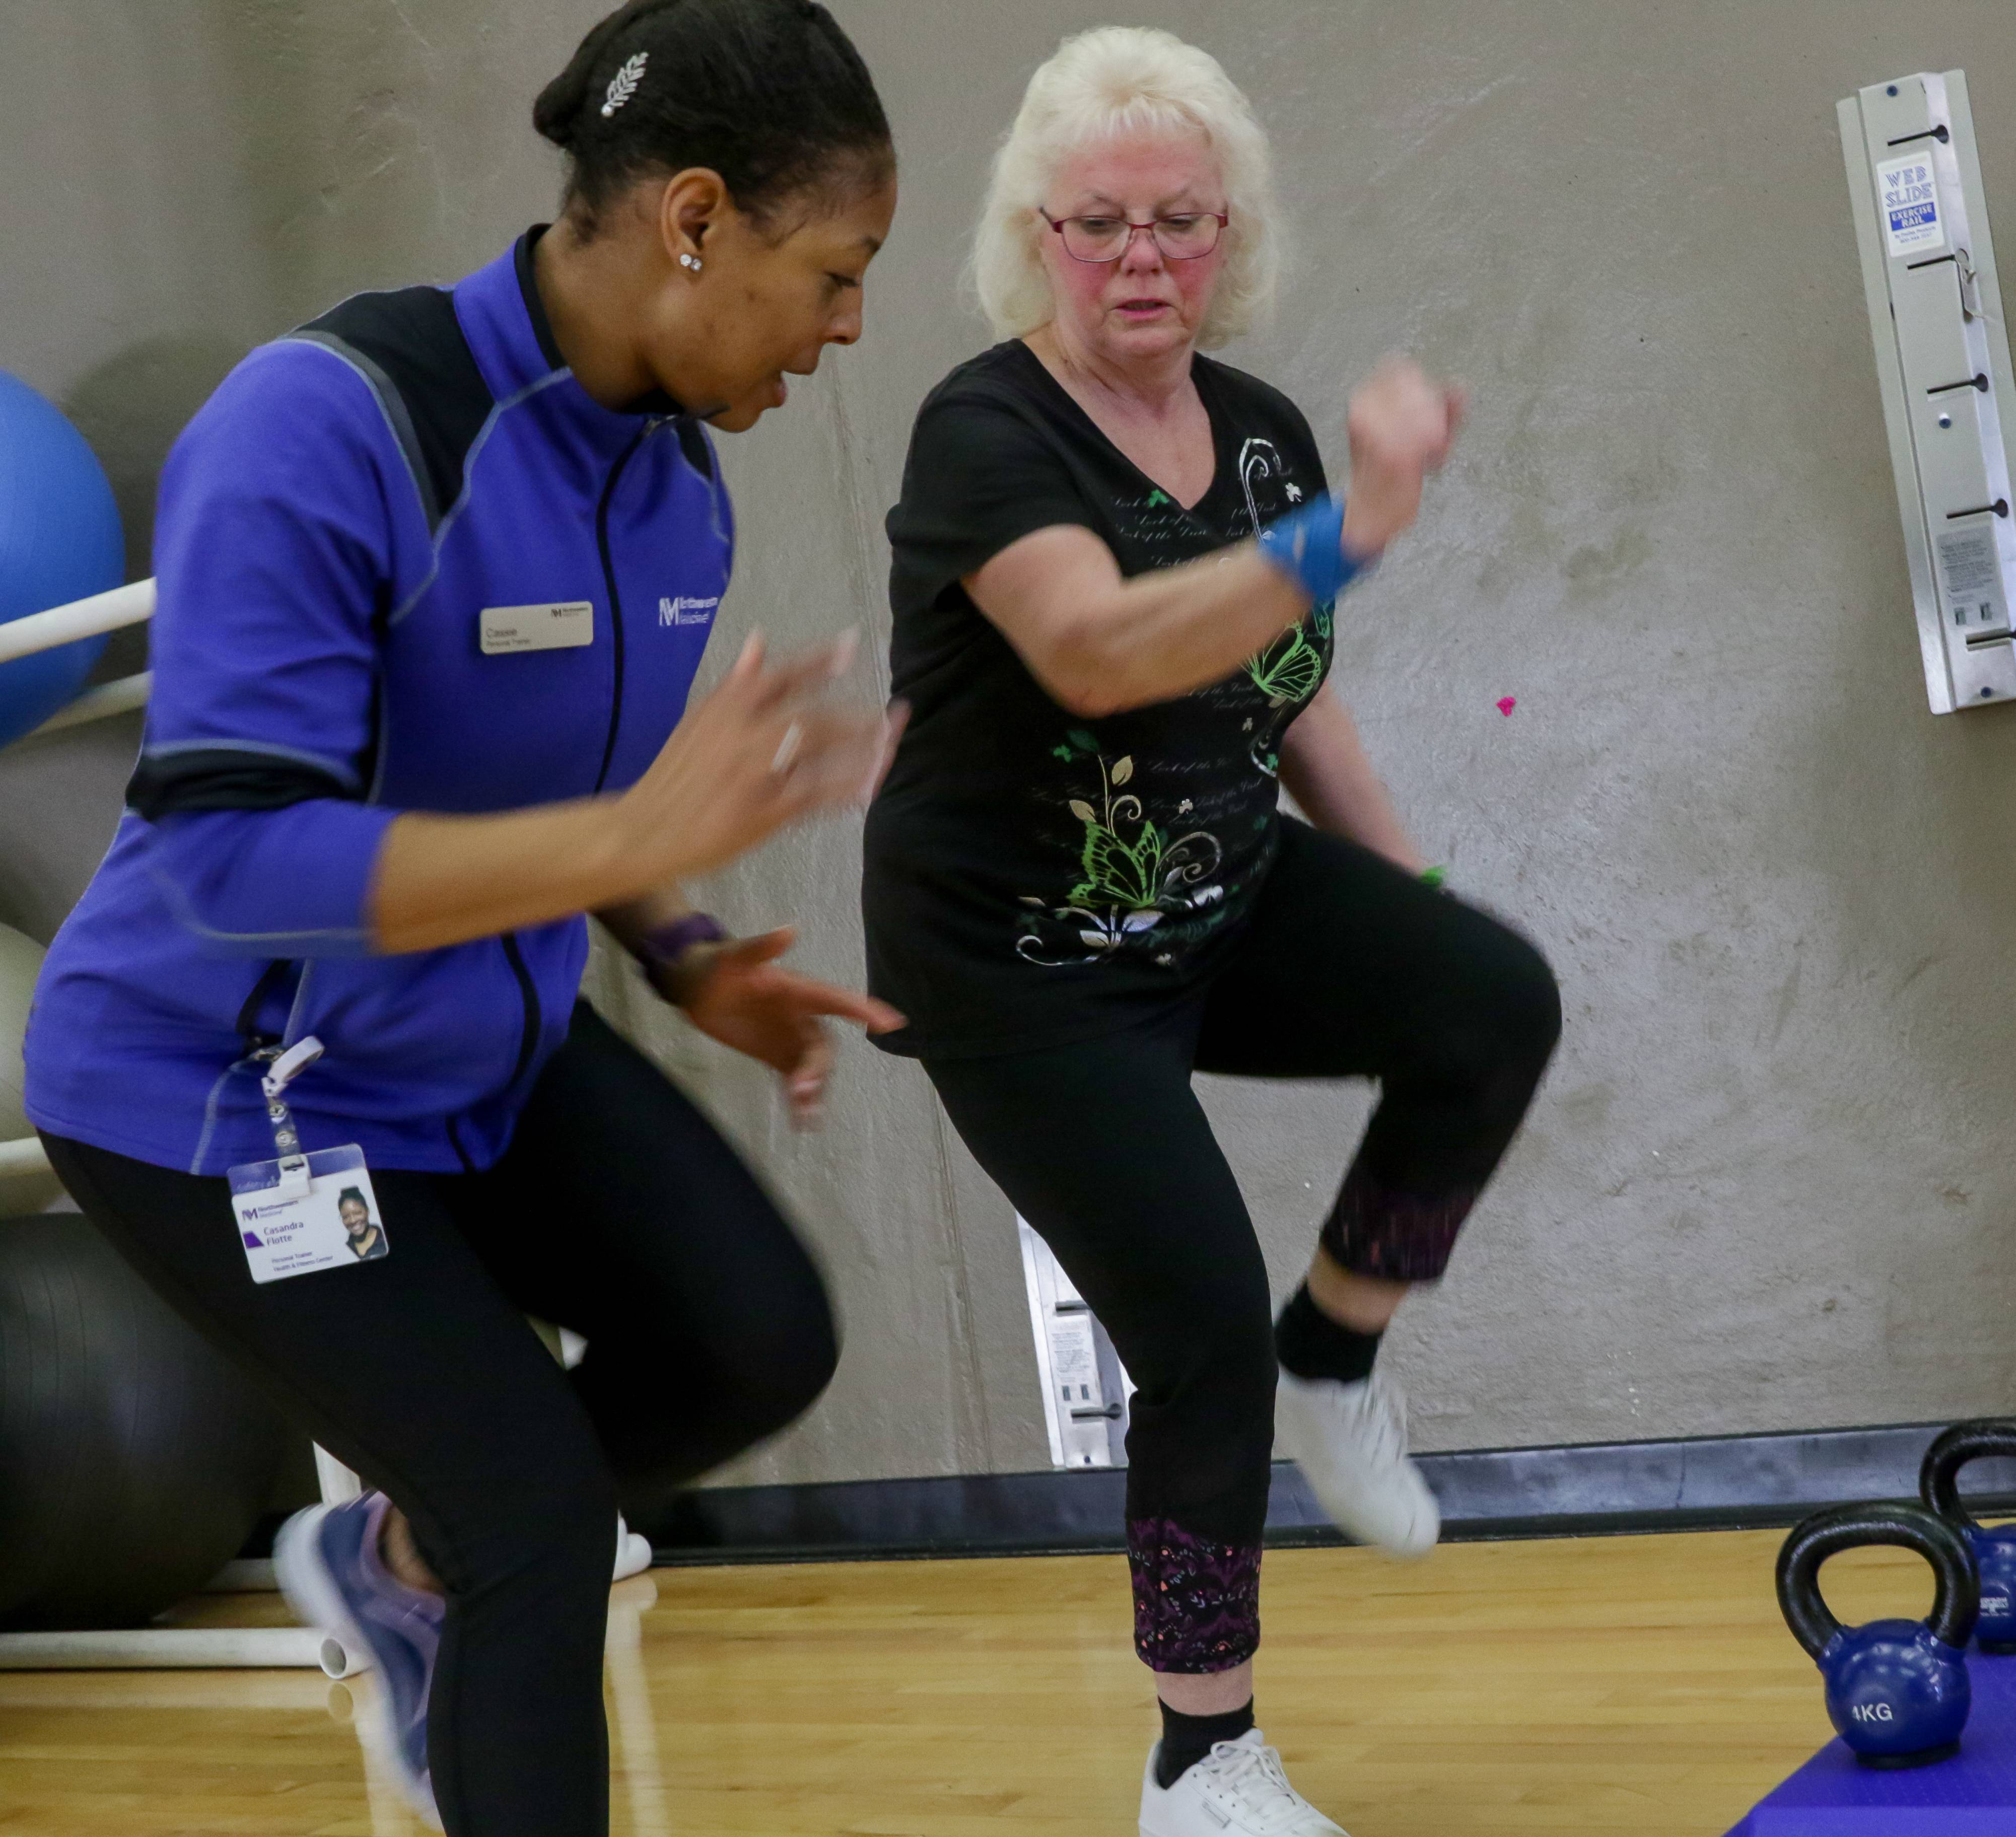 Michele Golden of Batavia, right, works out with fitness specialist Cassie Flotte at Delnor Health & Wellness Center in Geneva. Six months ago, Golden couldn't walk in her house without stopping to rest.